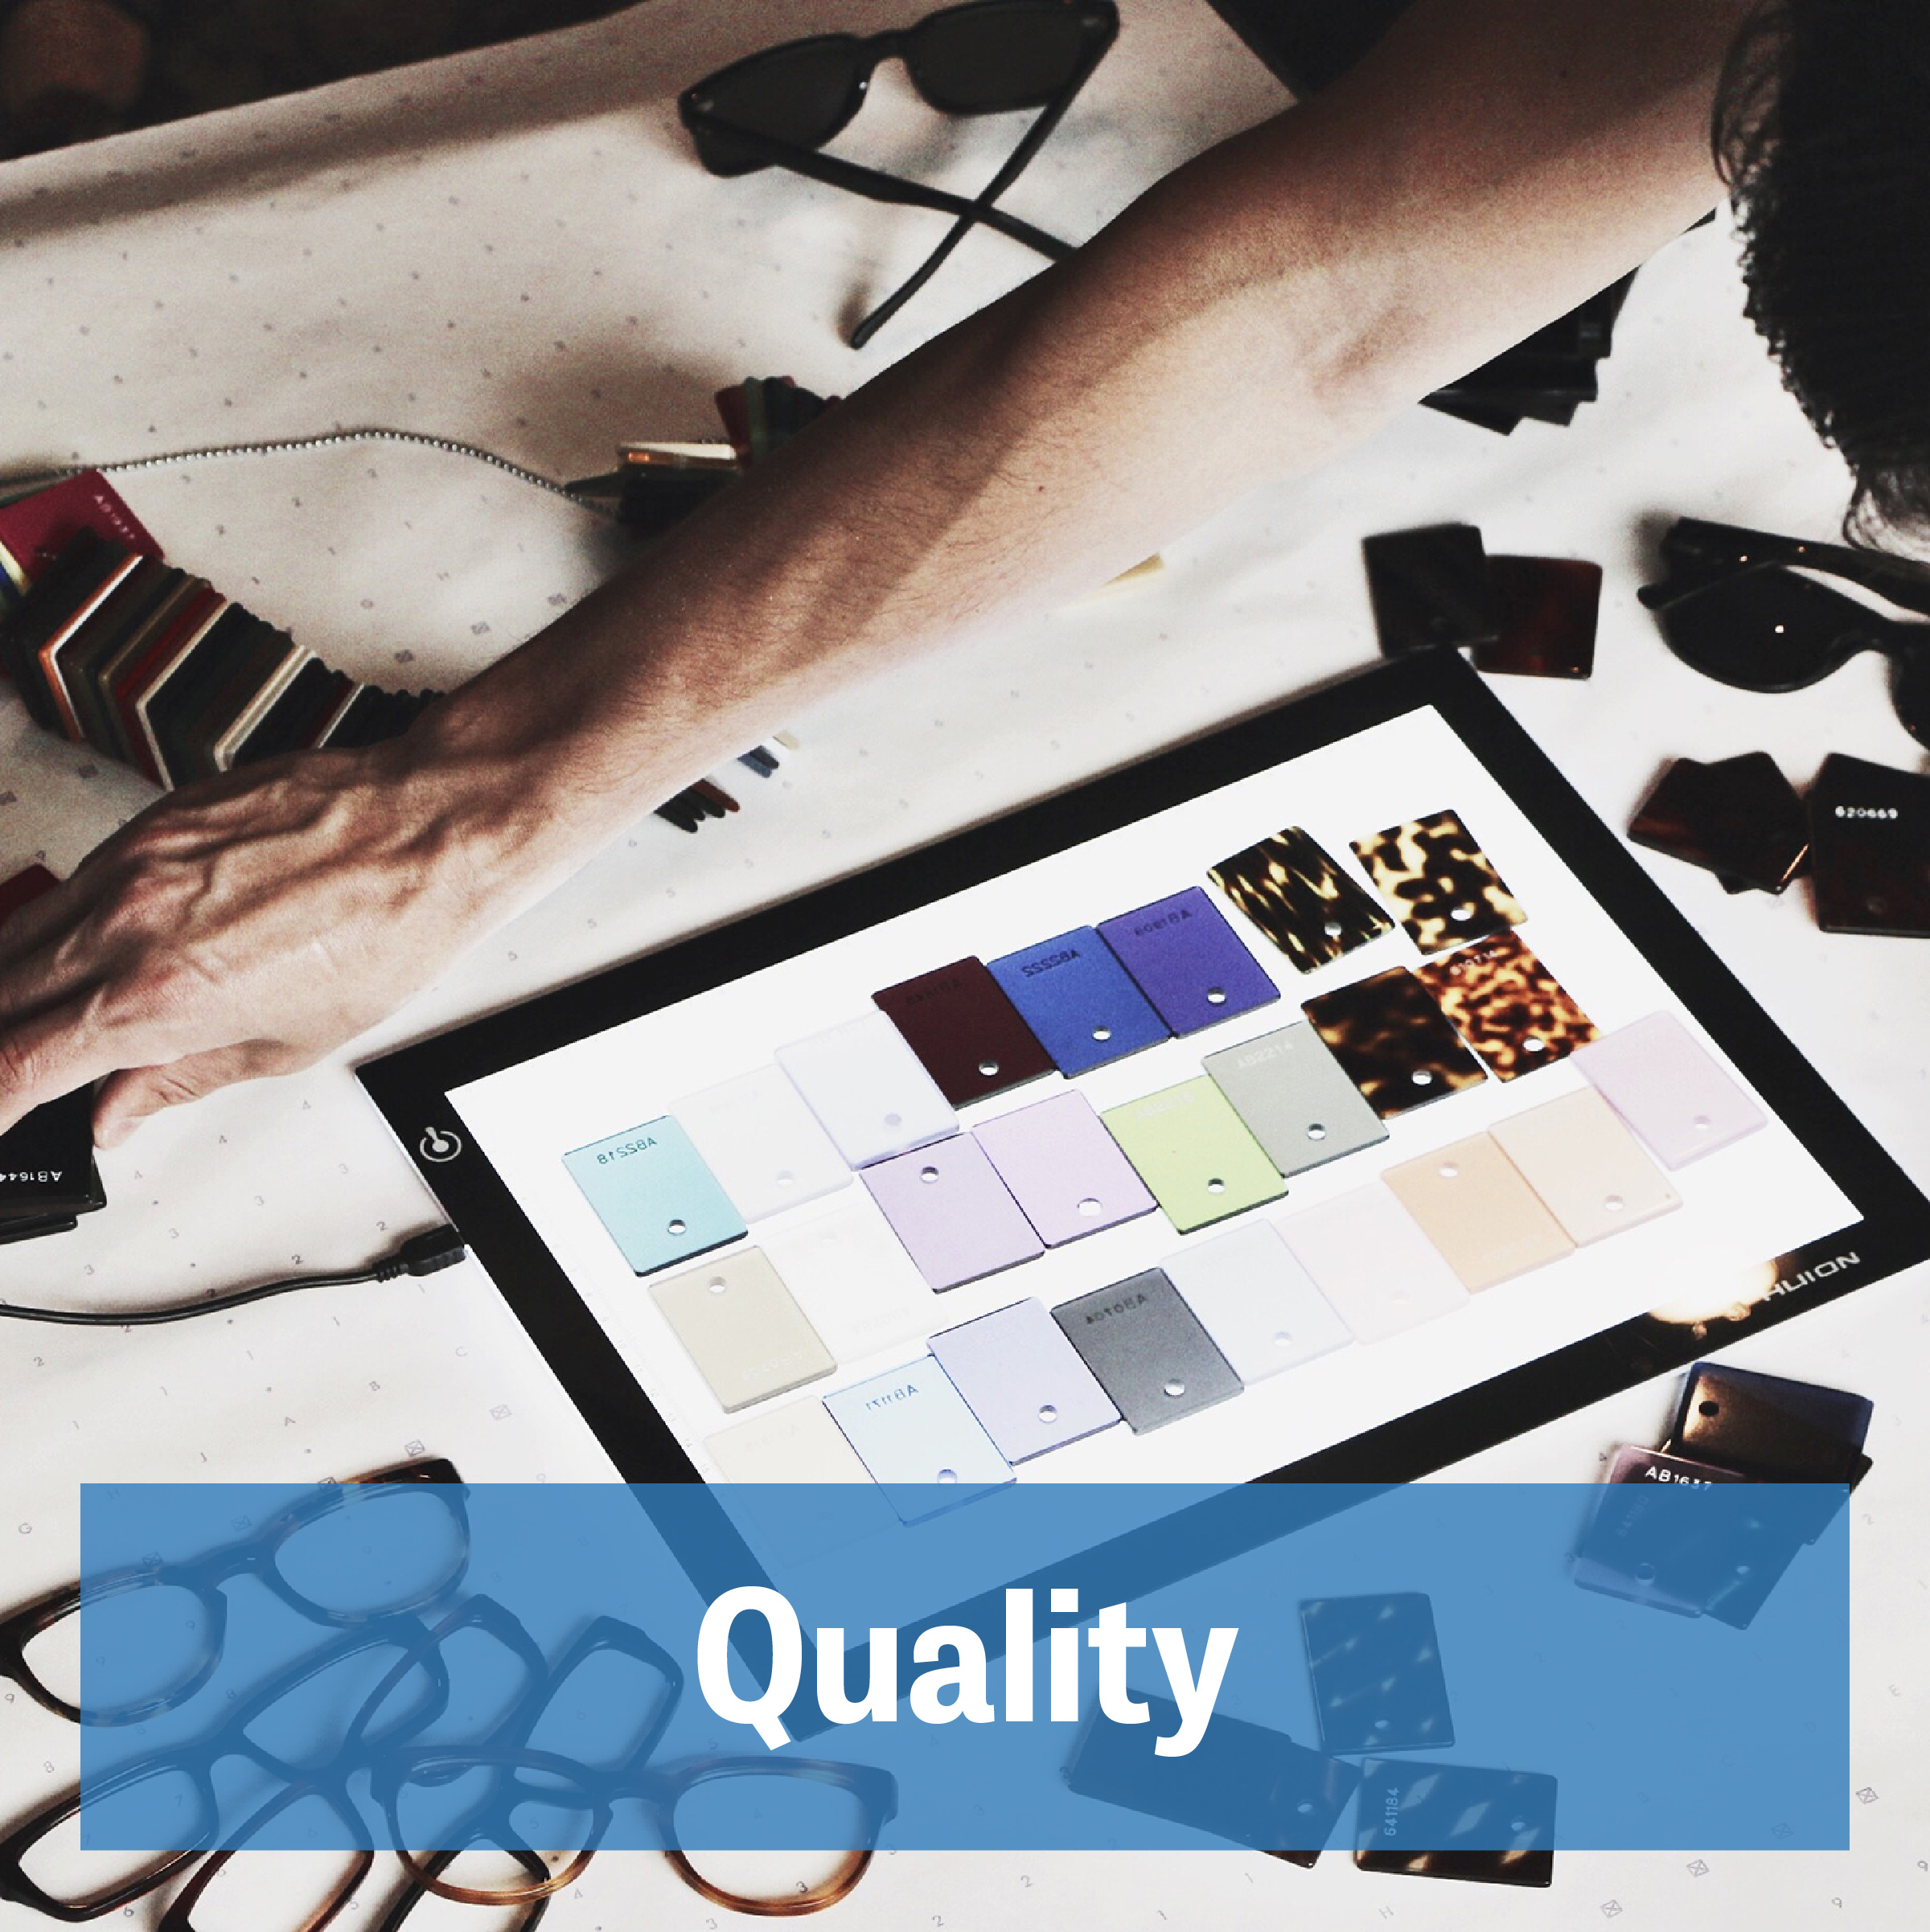 """Despite the  subjectivity of quality, everyone recognizes high quality when they see it. Here's what that means to us:   Accountability    Everything we say, do, or think is a direct reflection of J. Martasand and all those associated with the brand. That means you, too. But don't worry, we'll make you proud.   Simplicity   """"Keep it simple, stupid"""" - sometimes it's that easy. Stuffy design and marketing fluff detract us from what's important: At J. Martasand it's quality American-made sunglasses handcrafted with pride."""